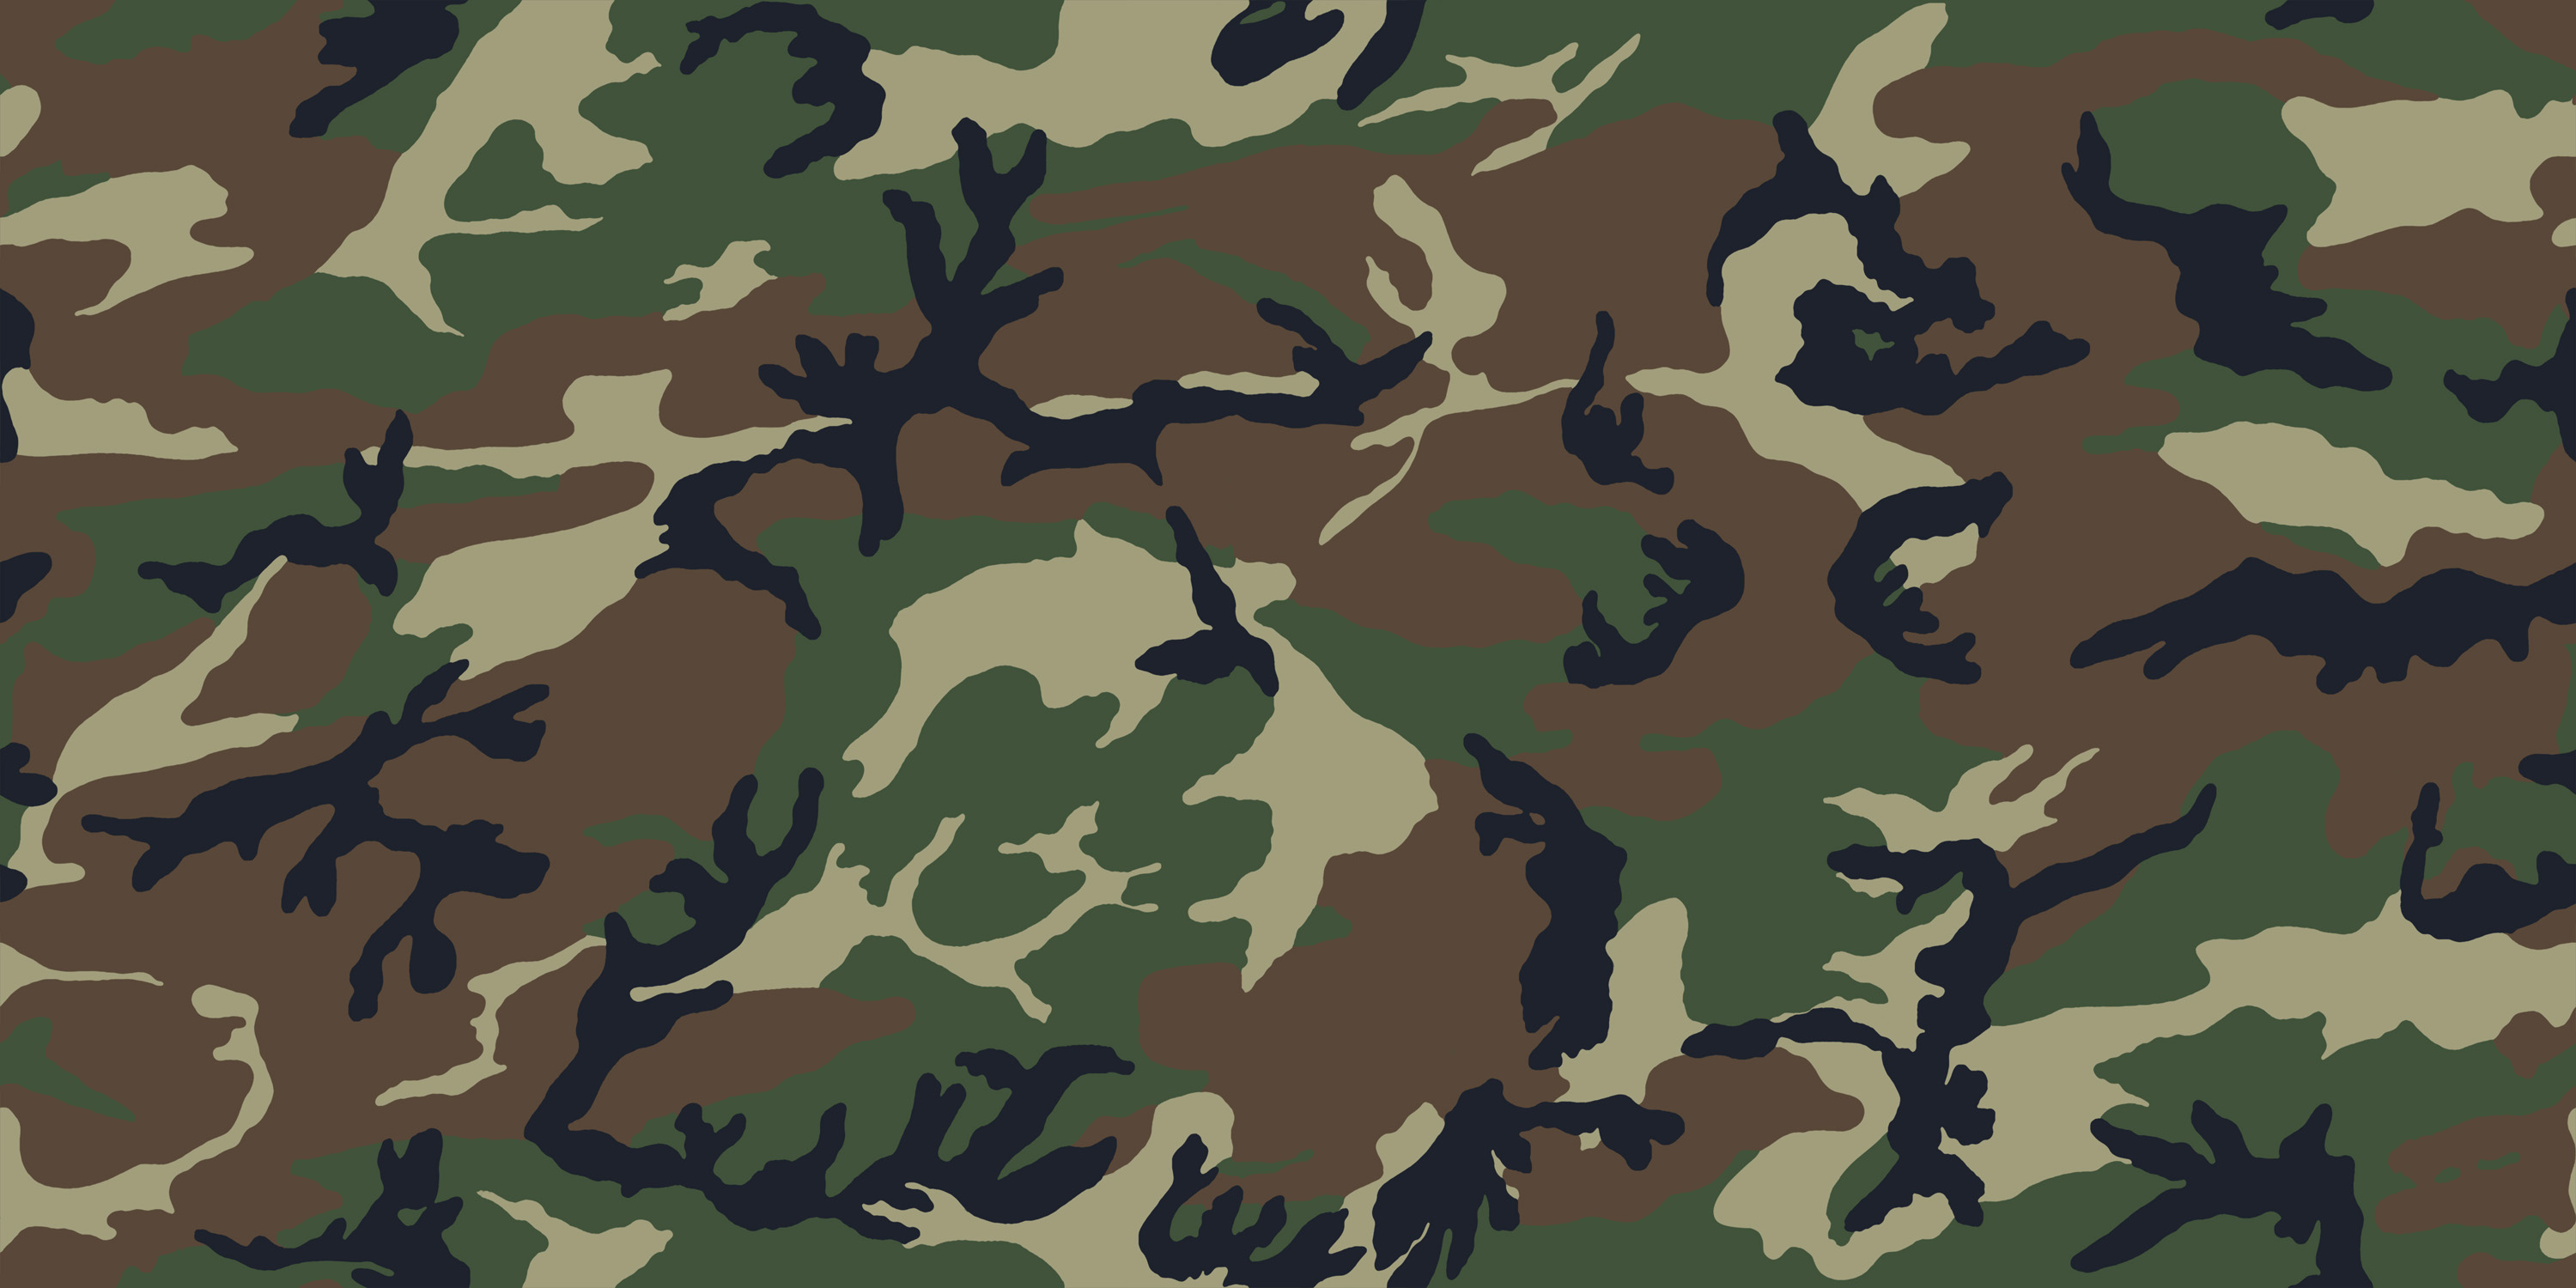 camouflage, texture, , woodland texture camouflage